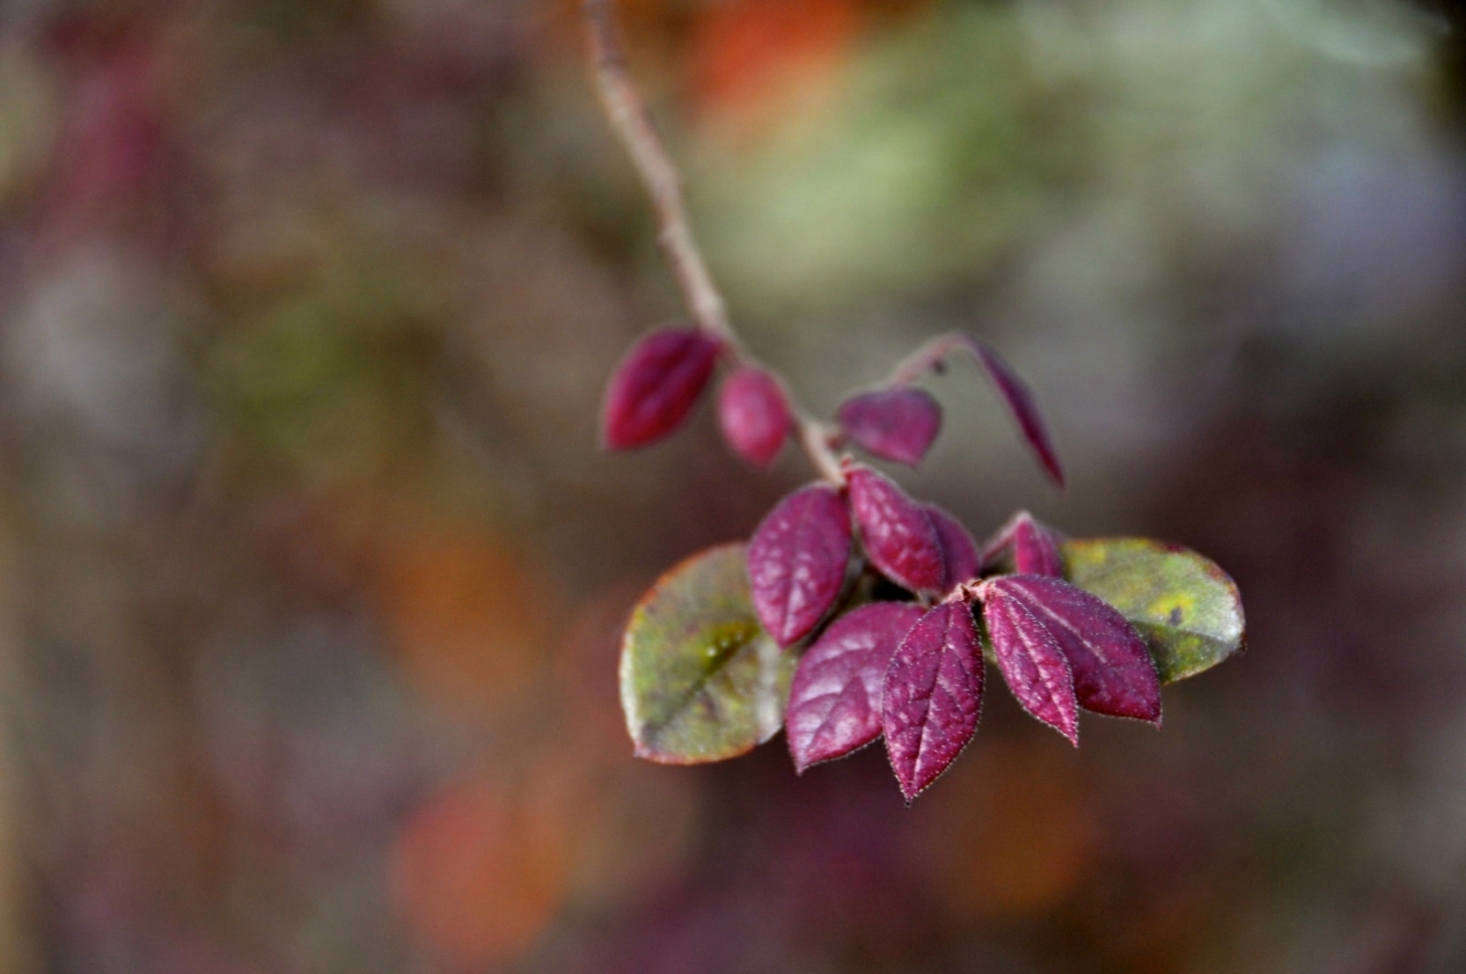 A variety of loropetalum with attractive, burgundy-colored leaves. Photograph by Faunng&#8